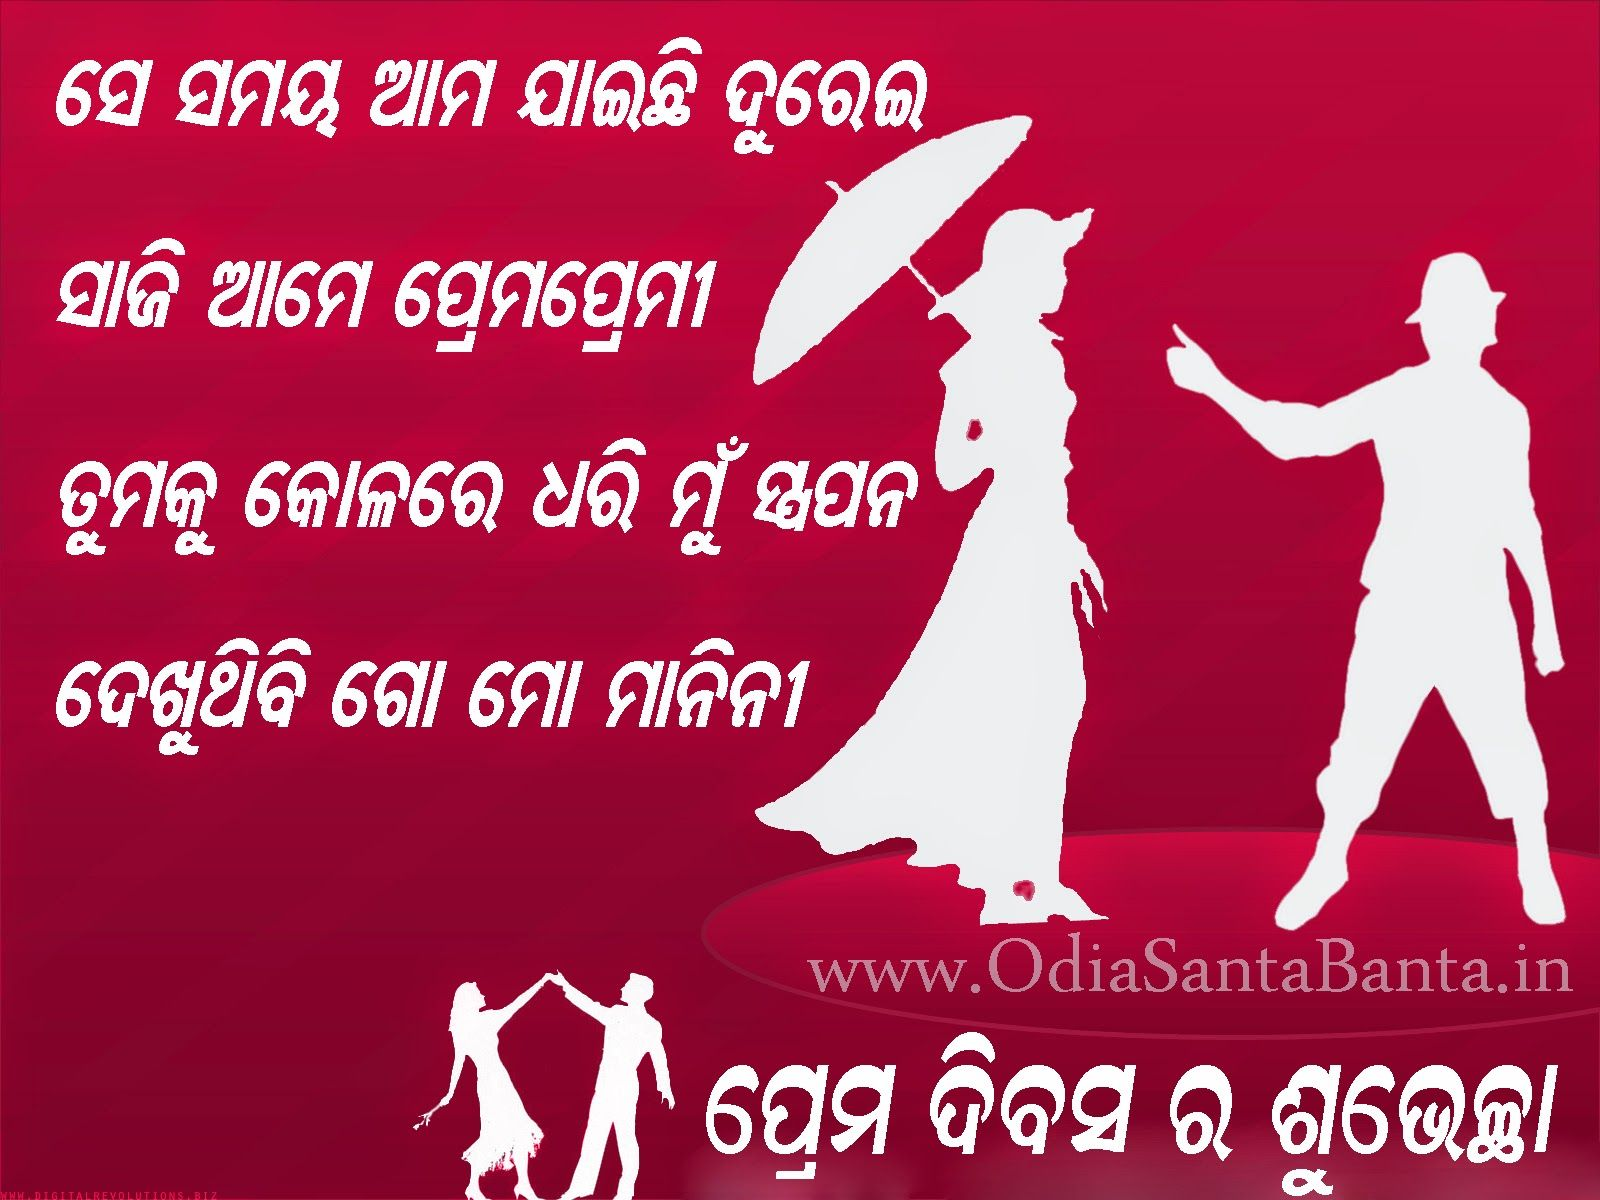 Odia Santa Banta   VALENTINES DAY ODIA WISHES LOVE POEMS AND